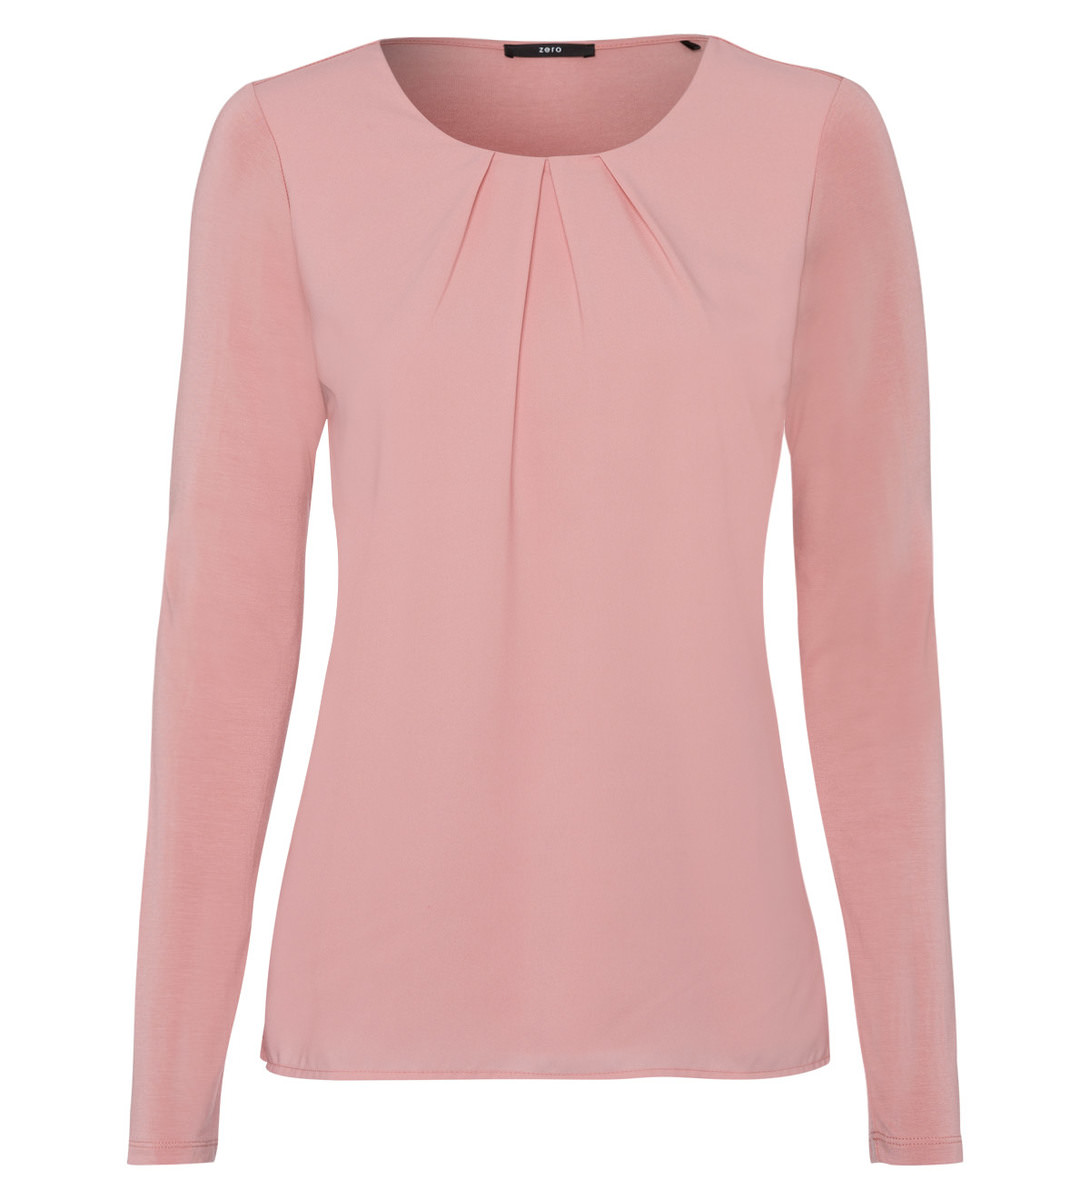 Blusenshirt in dusk rose